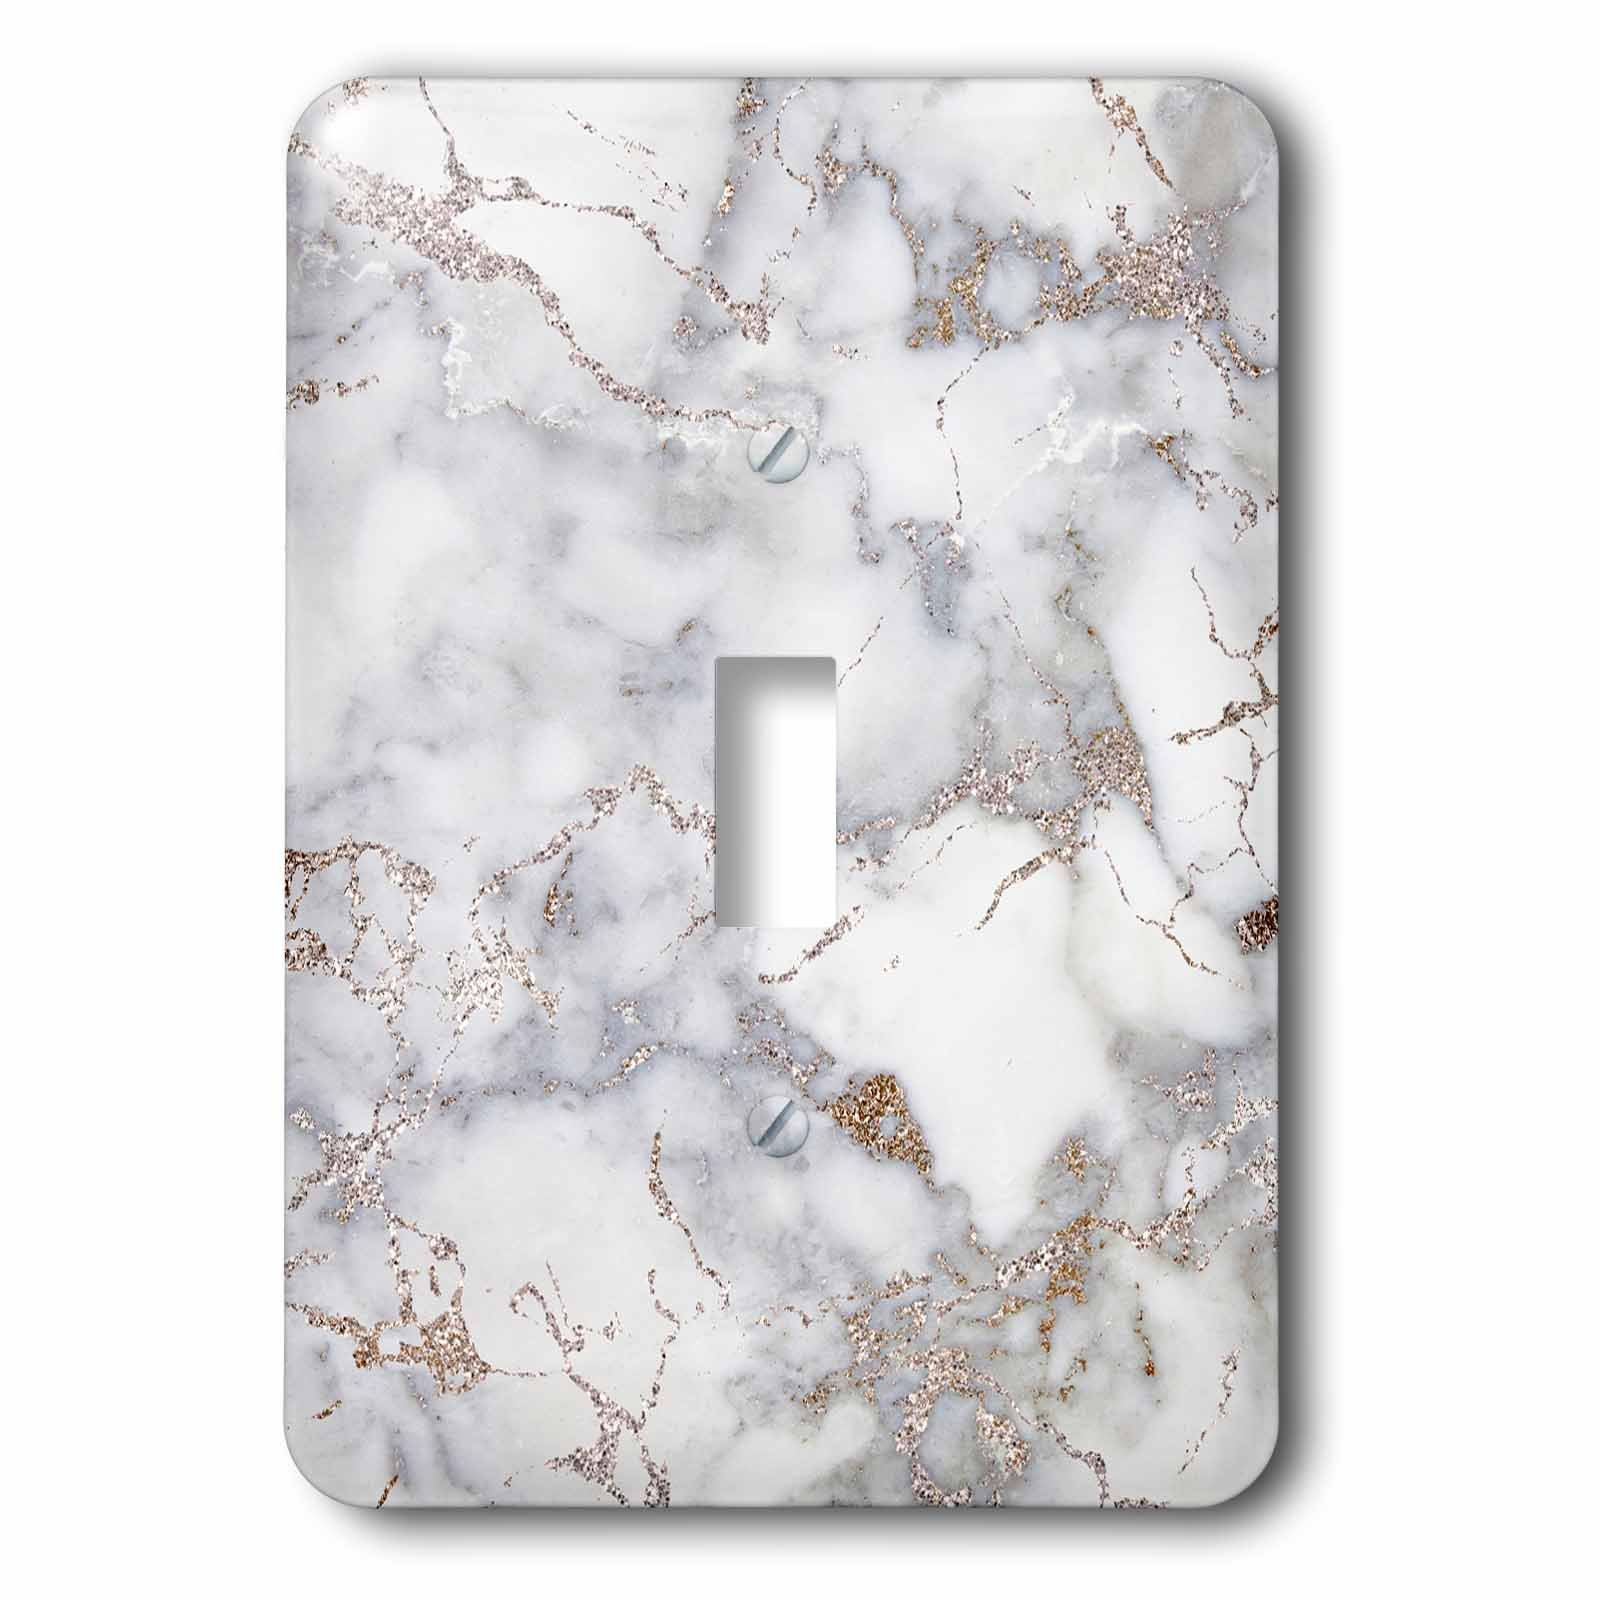 3dRose lsp_275085_1 Image of Luxury Trendy Rose Gold Blush Glitter Marble Agate Quartz Toggle Switch, Mixed